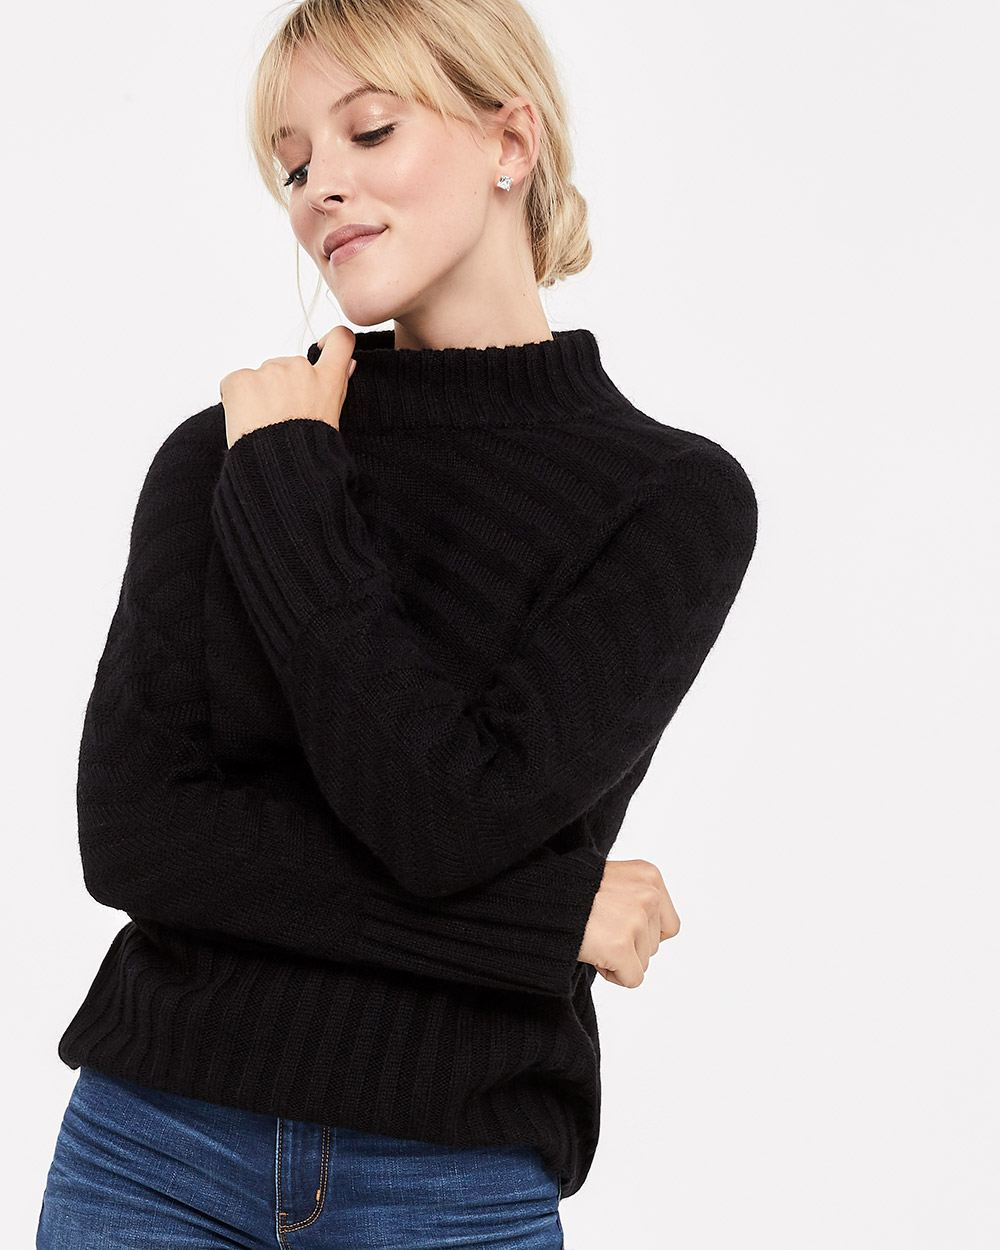 Pagode Sleeve Mock Neck Sweater